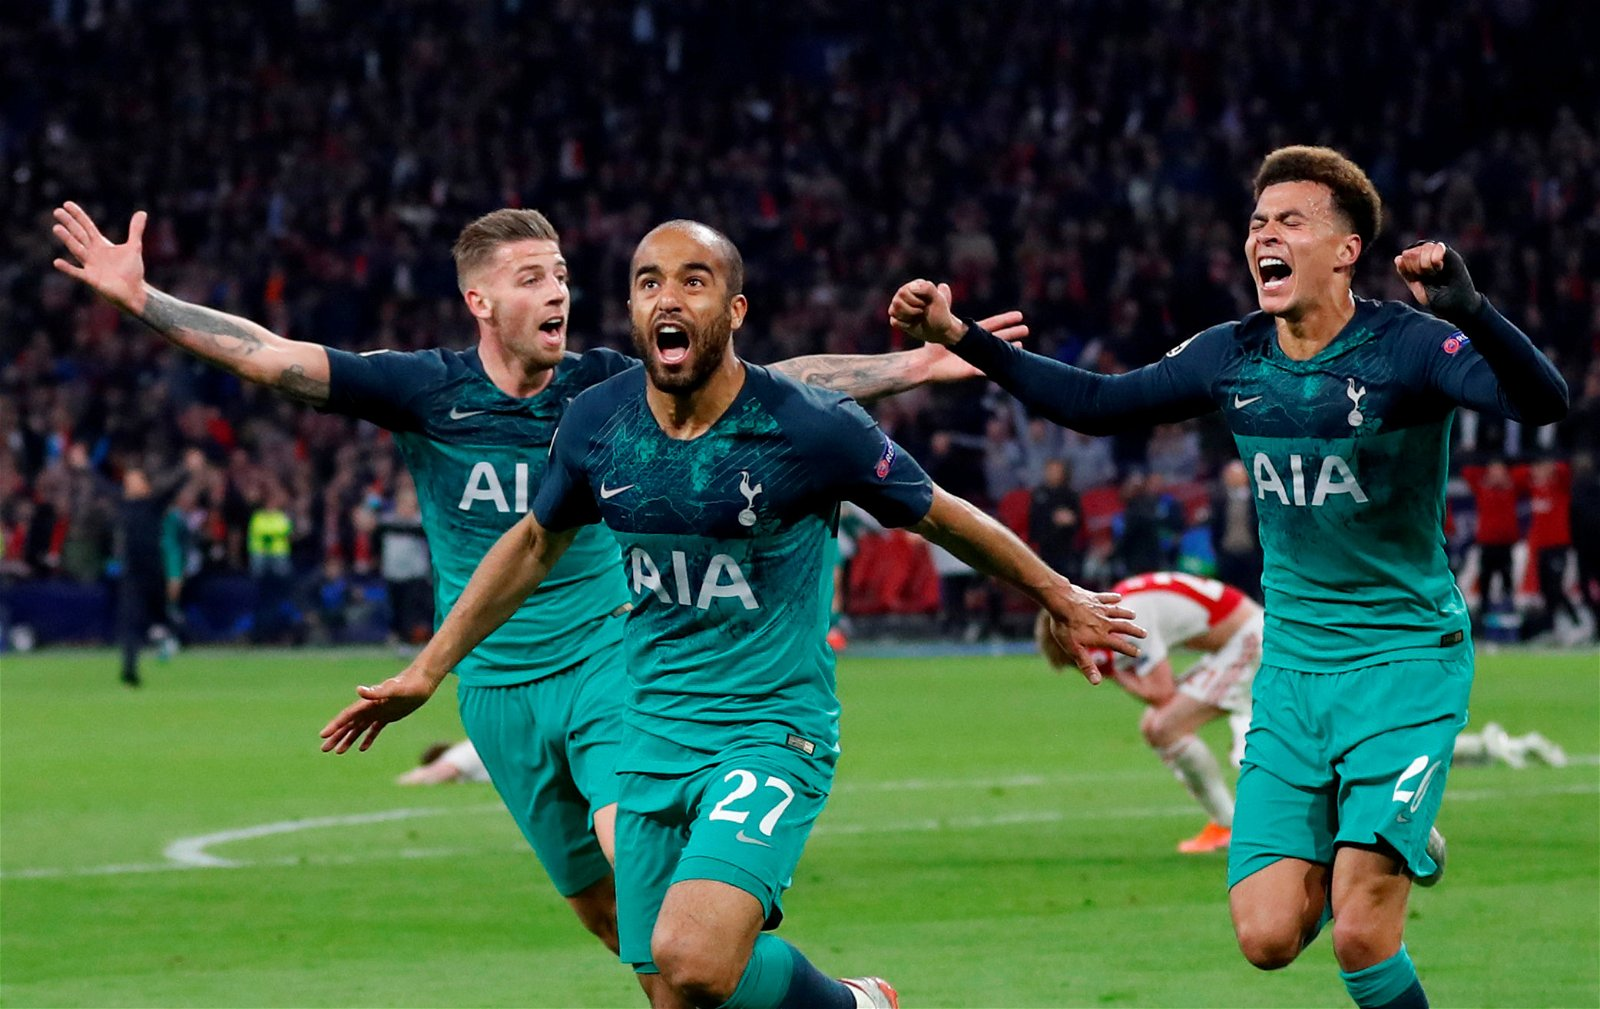 2019 05 08T212030Z 1355840131 RC18CBAF10D0 RTRMADP 3 SOCCER CHAMPIONS AJA TOT - 3 European finals already: Jurgen Klopp venturing into uncharted territory vs Spurs - opinion